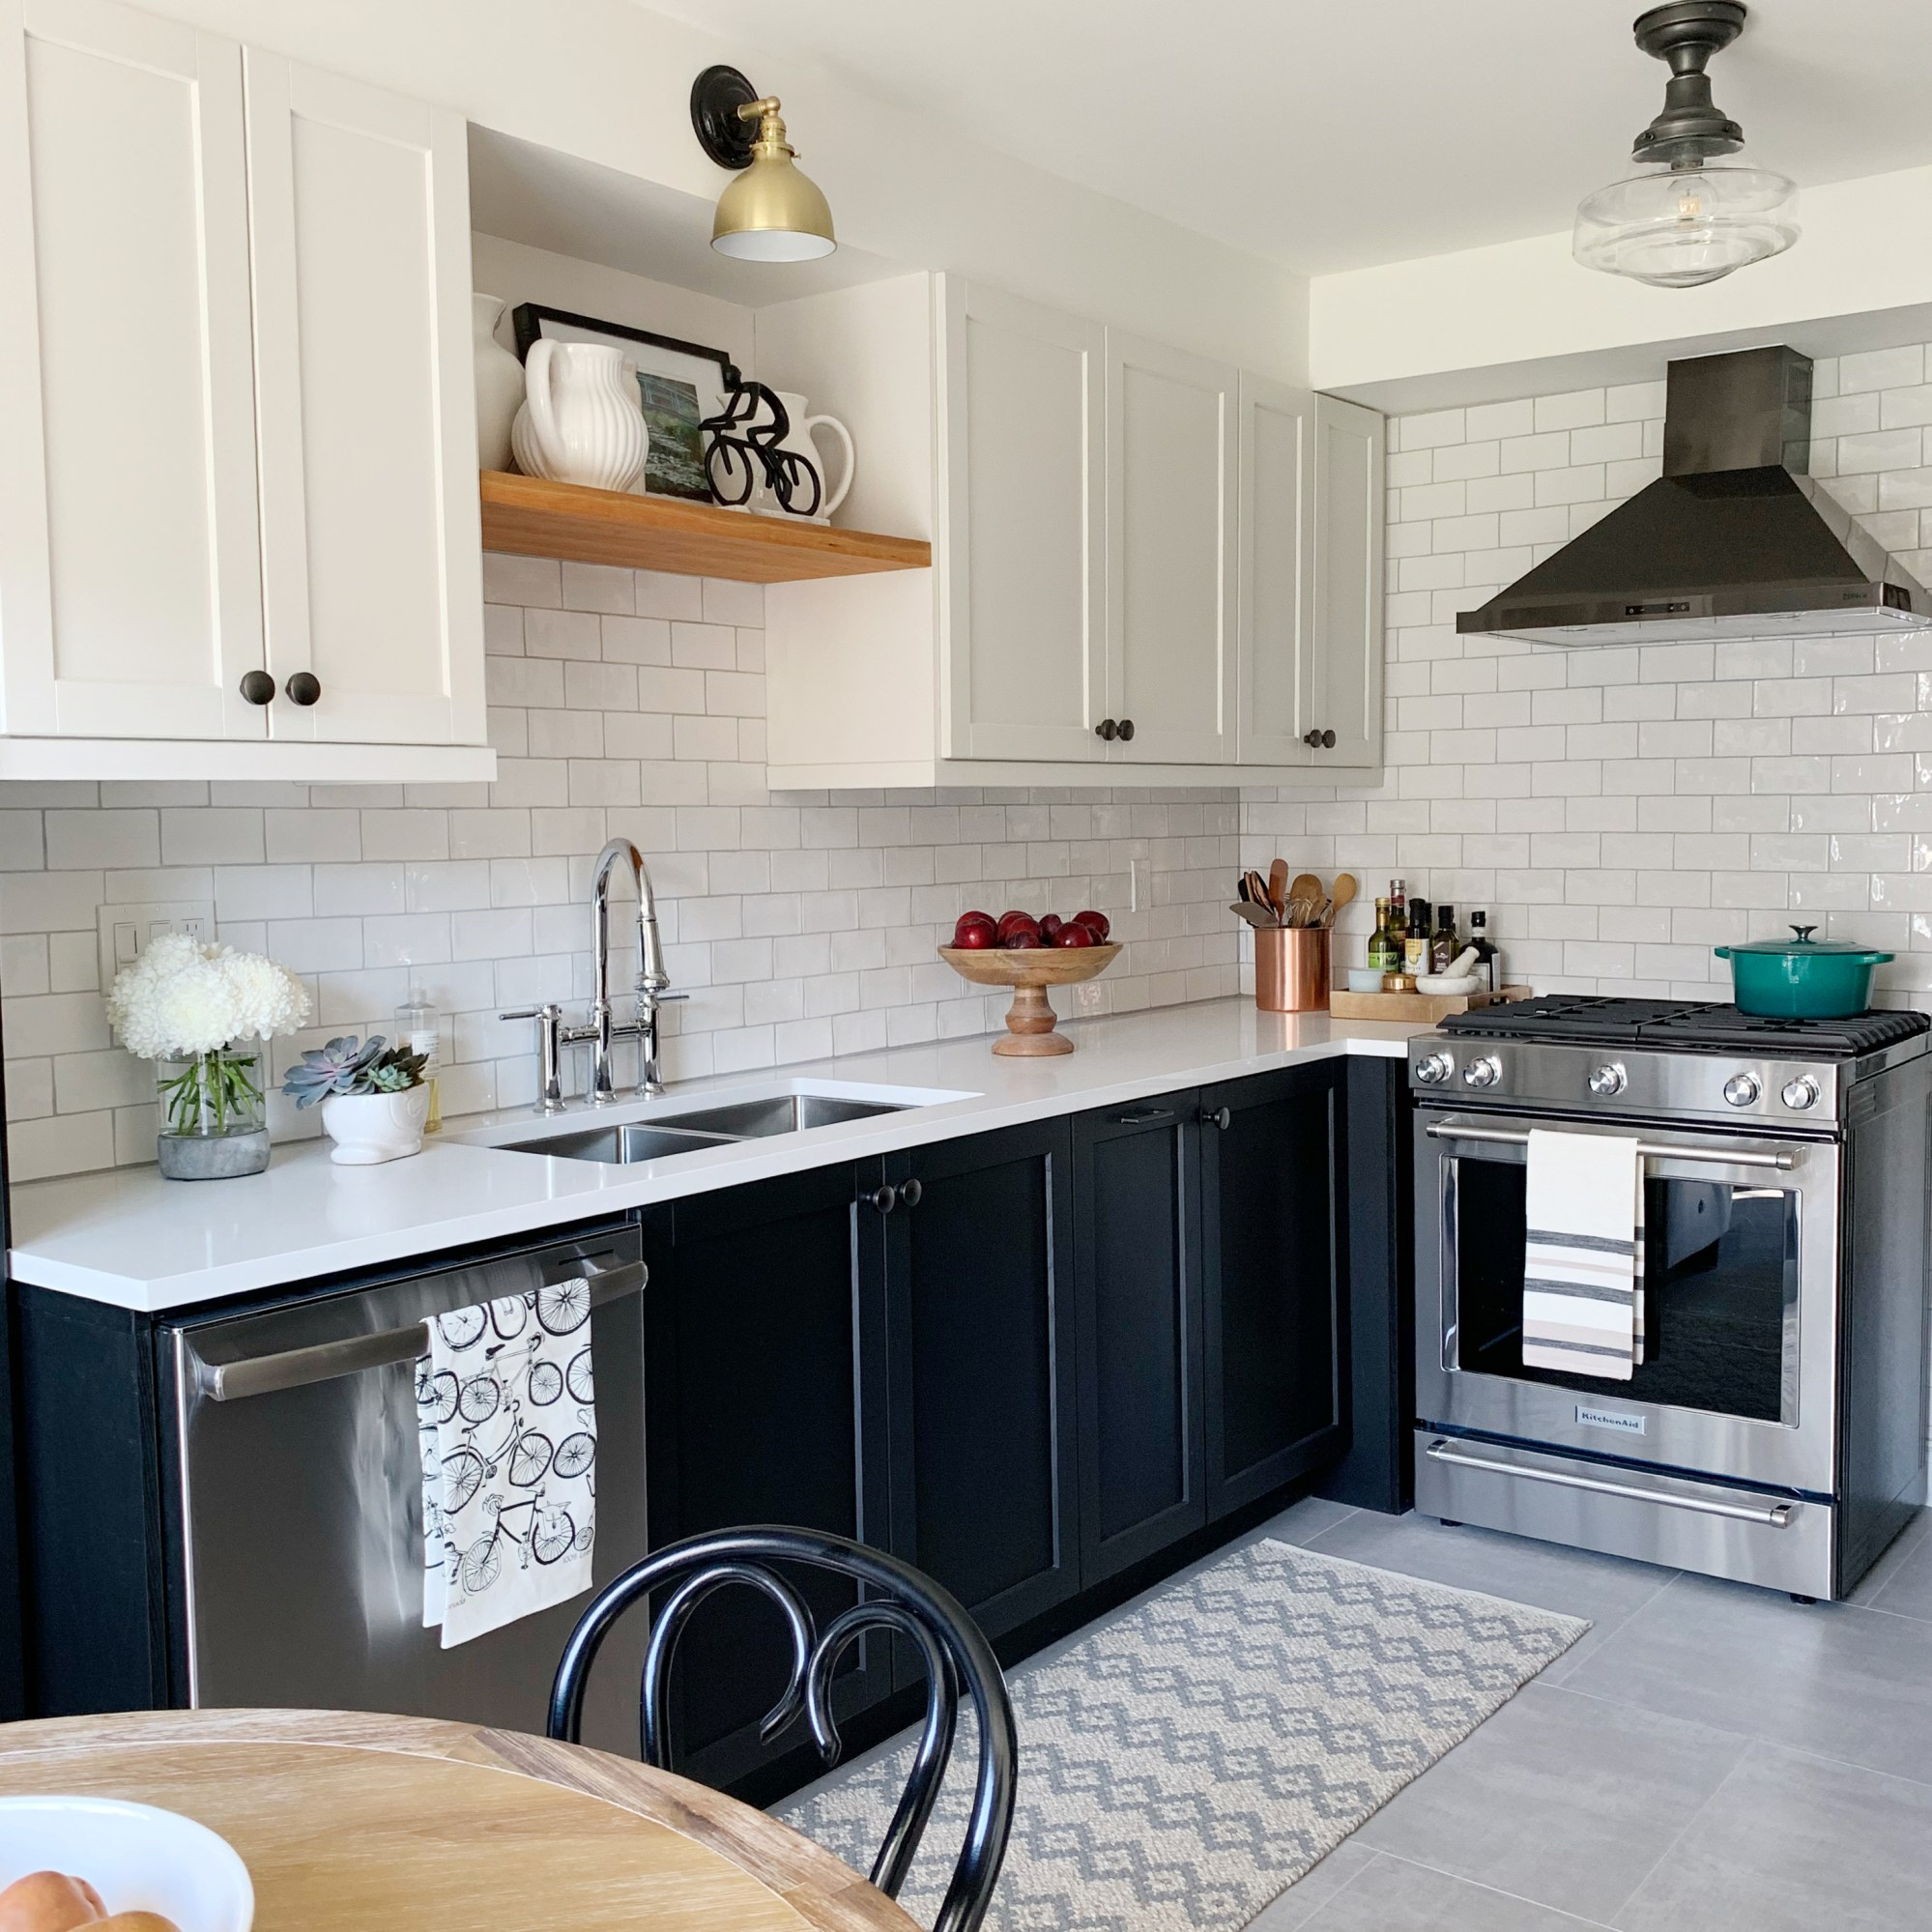 hight resolution of power your life electrical considerations for kitchen renovations